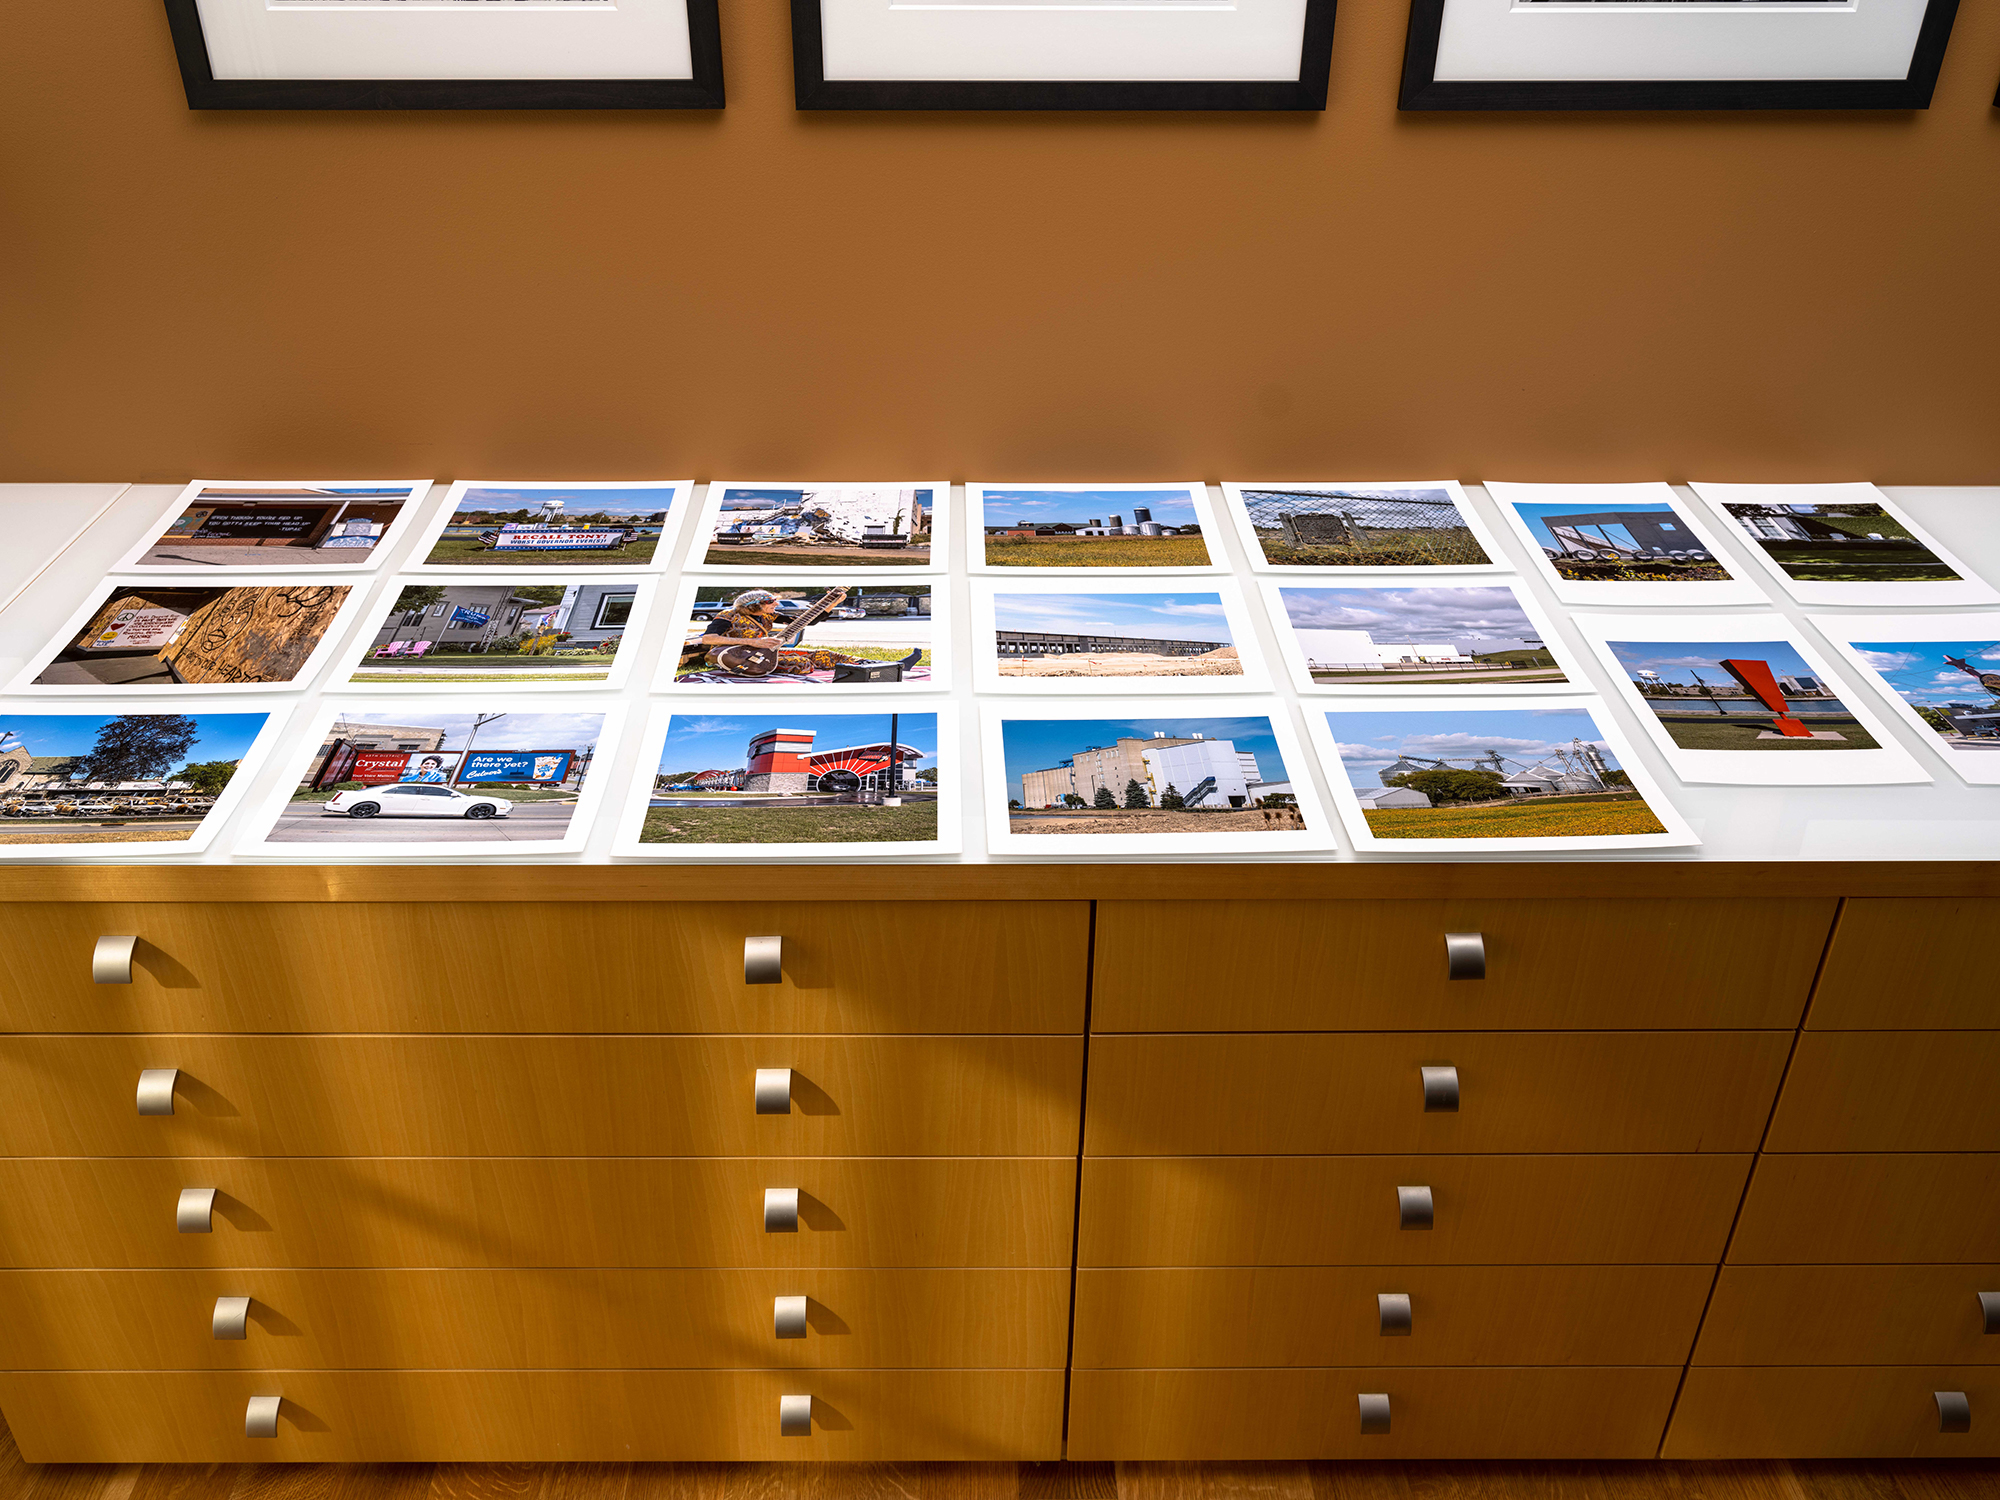 Sometimes the Easiest Way to Sequence Images is on a Counter or Table